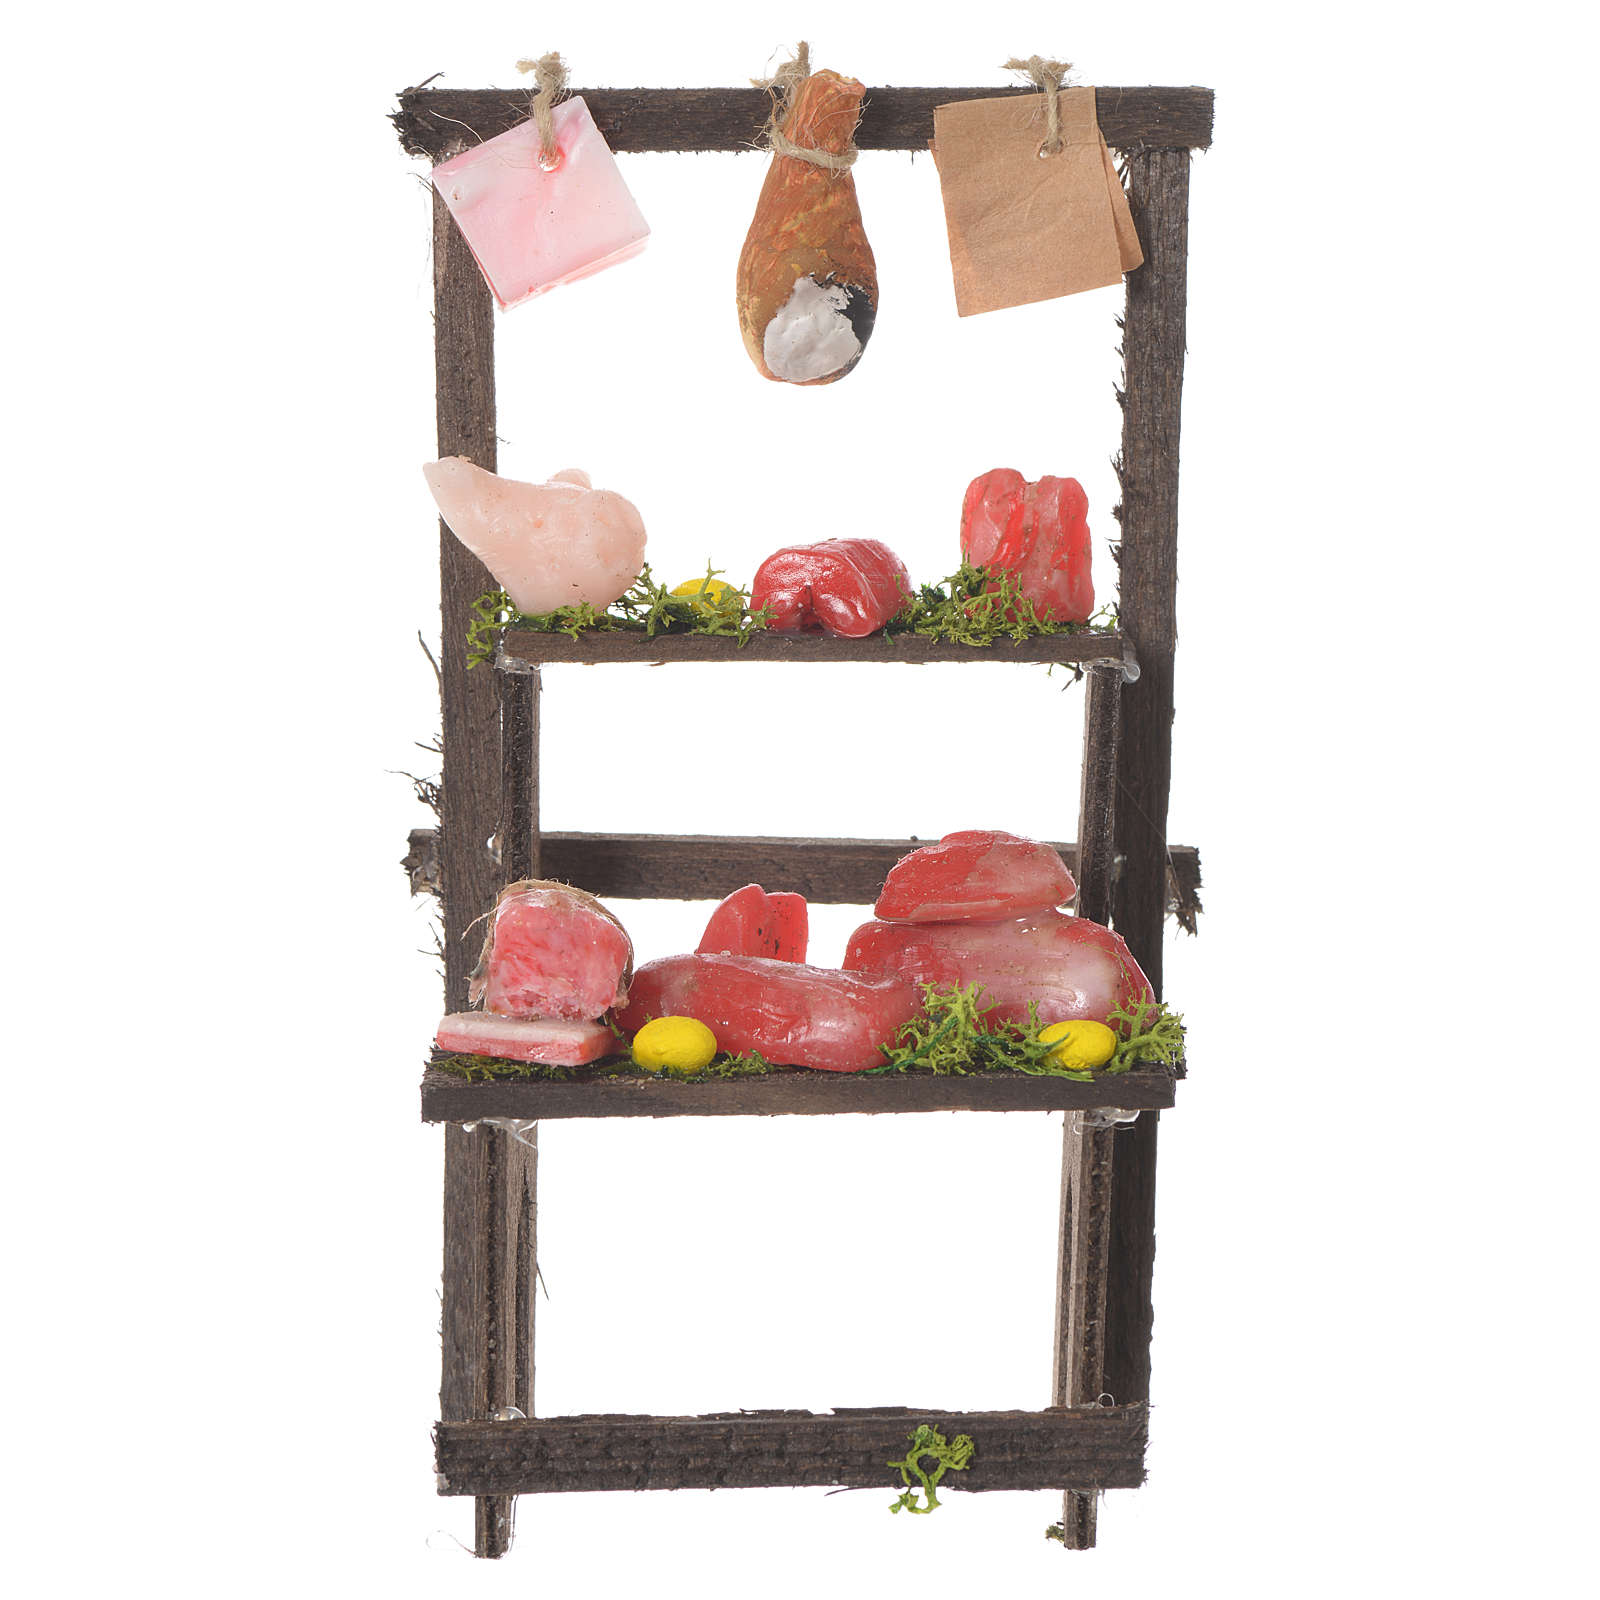 Meat stall in wax, 13.5x8x5.5cm 4